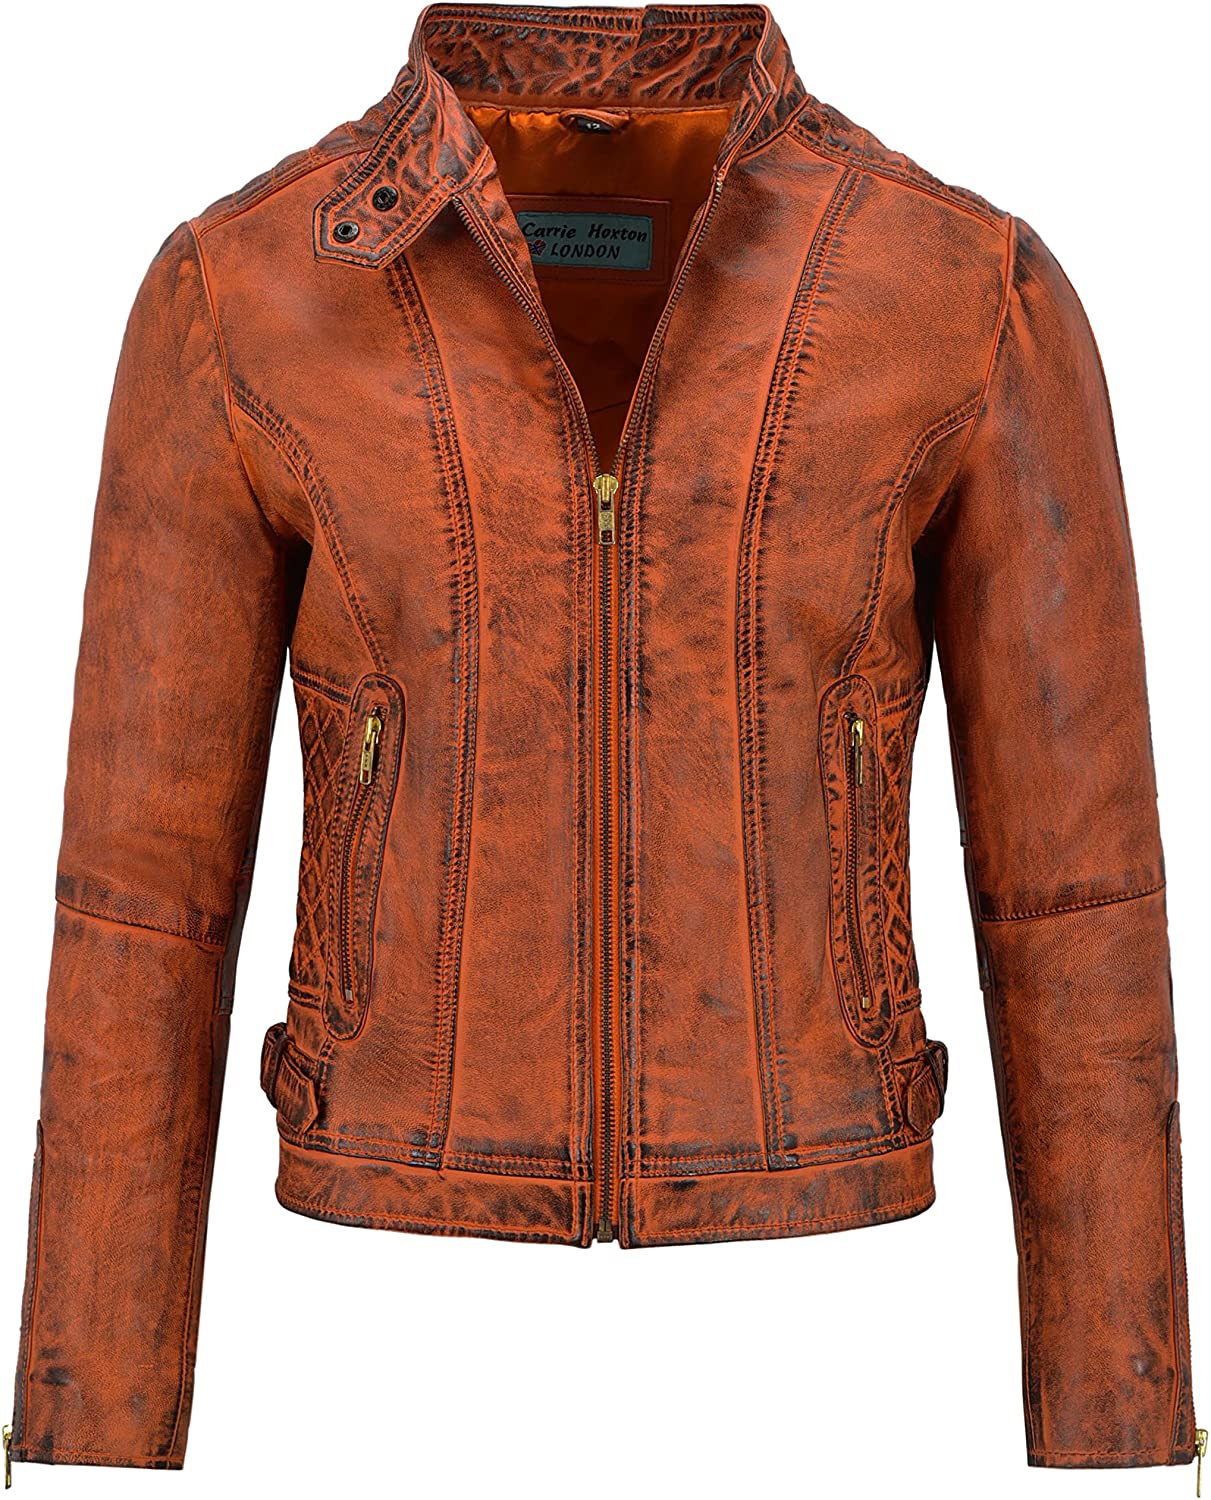 Ladies Leather Jacket Dirty Orange Wax Stylish Quilted Shoulder Biker Style 3061